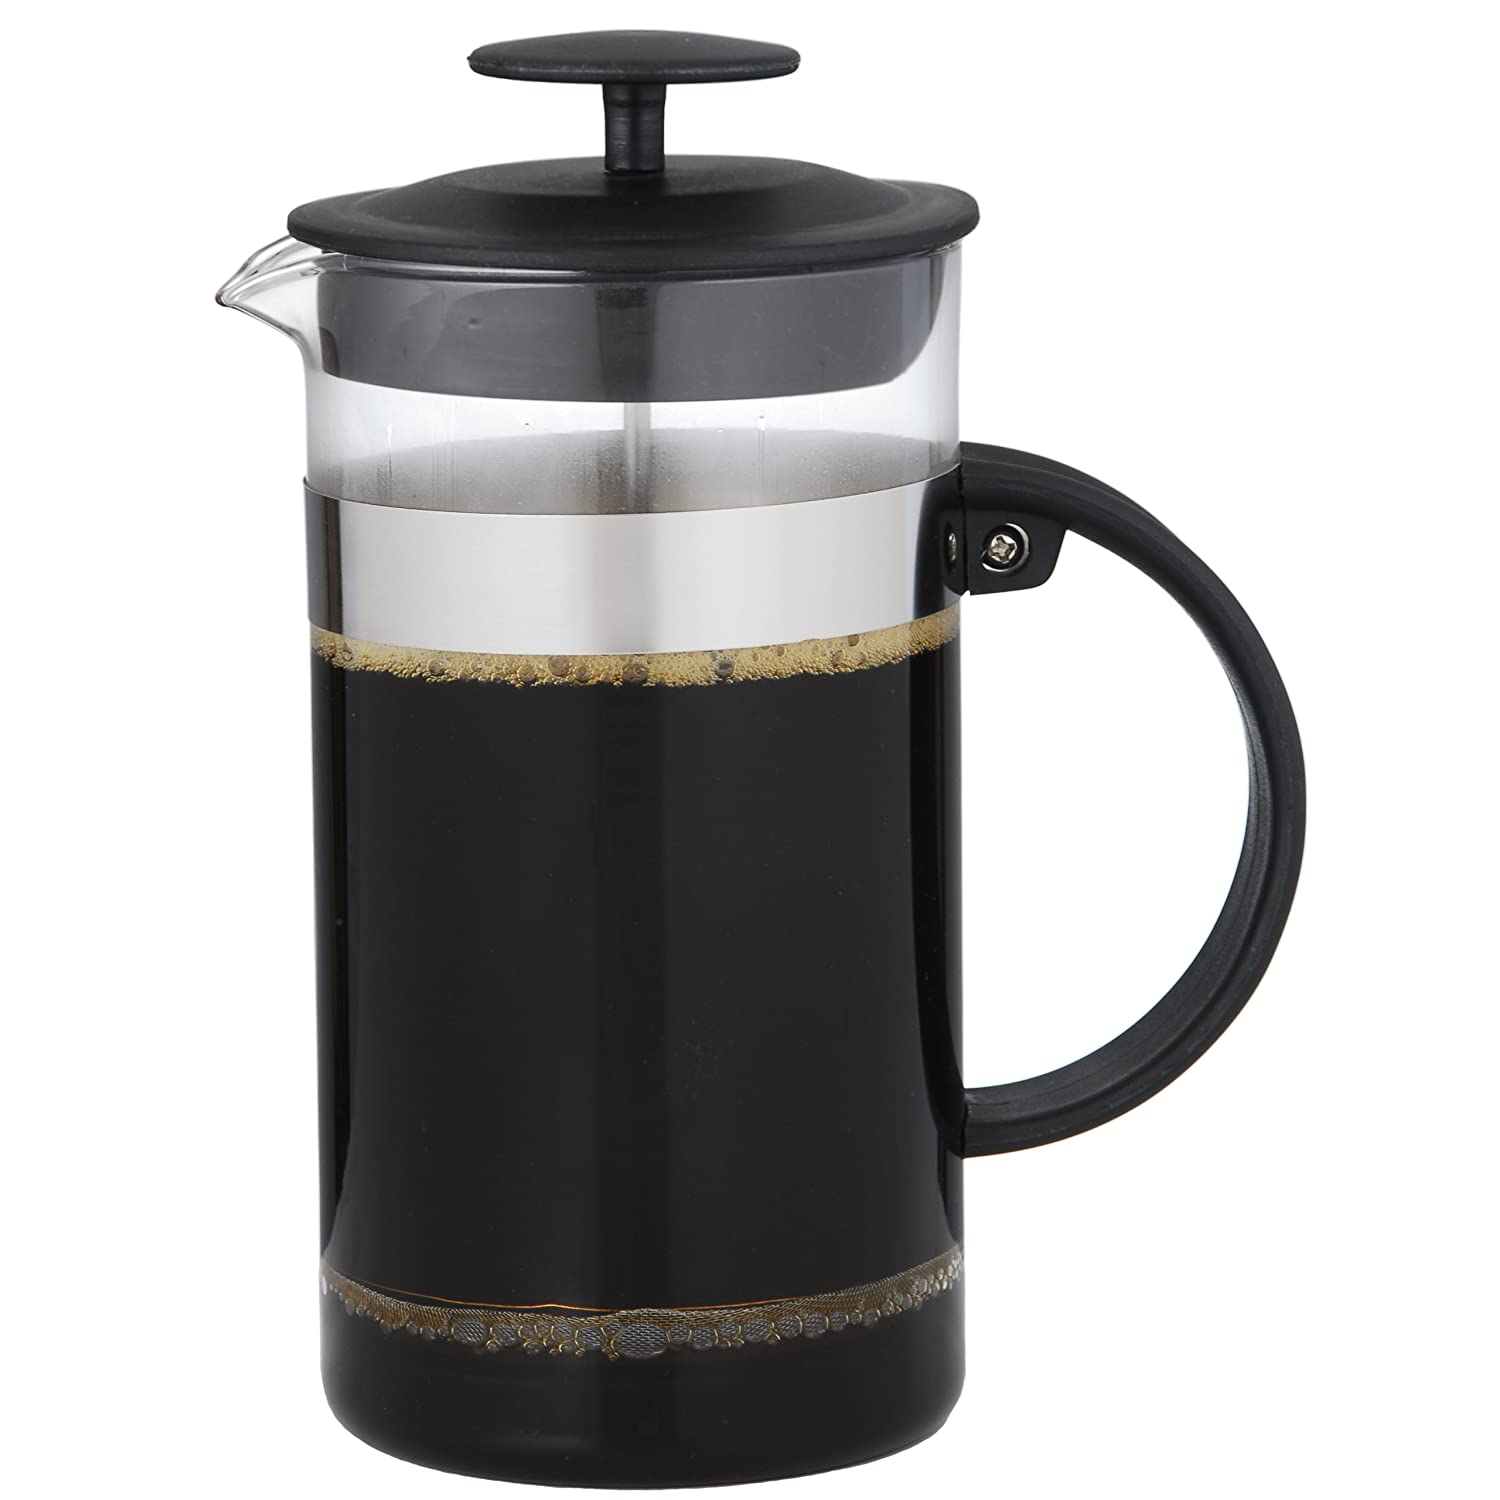 specialspecials grosche zurich 350 ml french press coffee maker 3 cup about 1 coffee mug 0. Black Bedroom Furniture Sets. Home Design Ideas